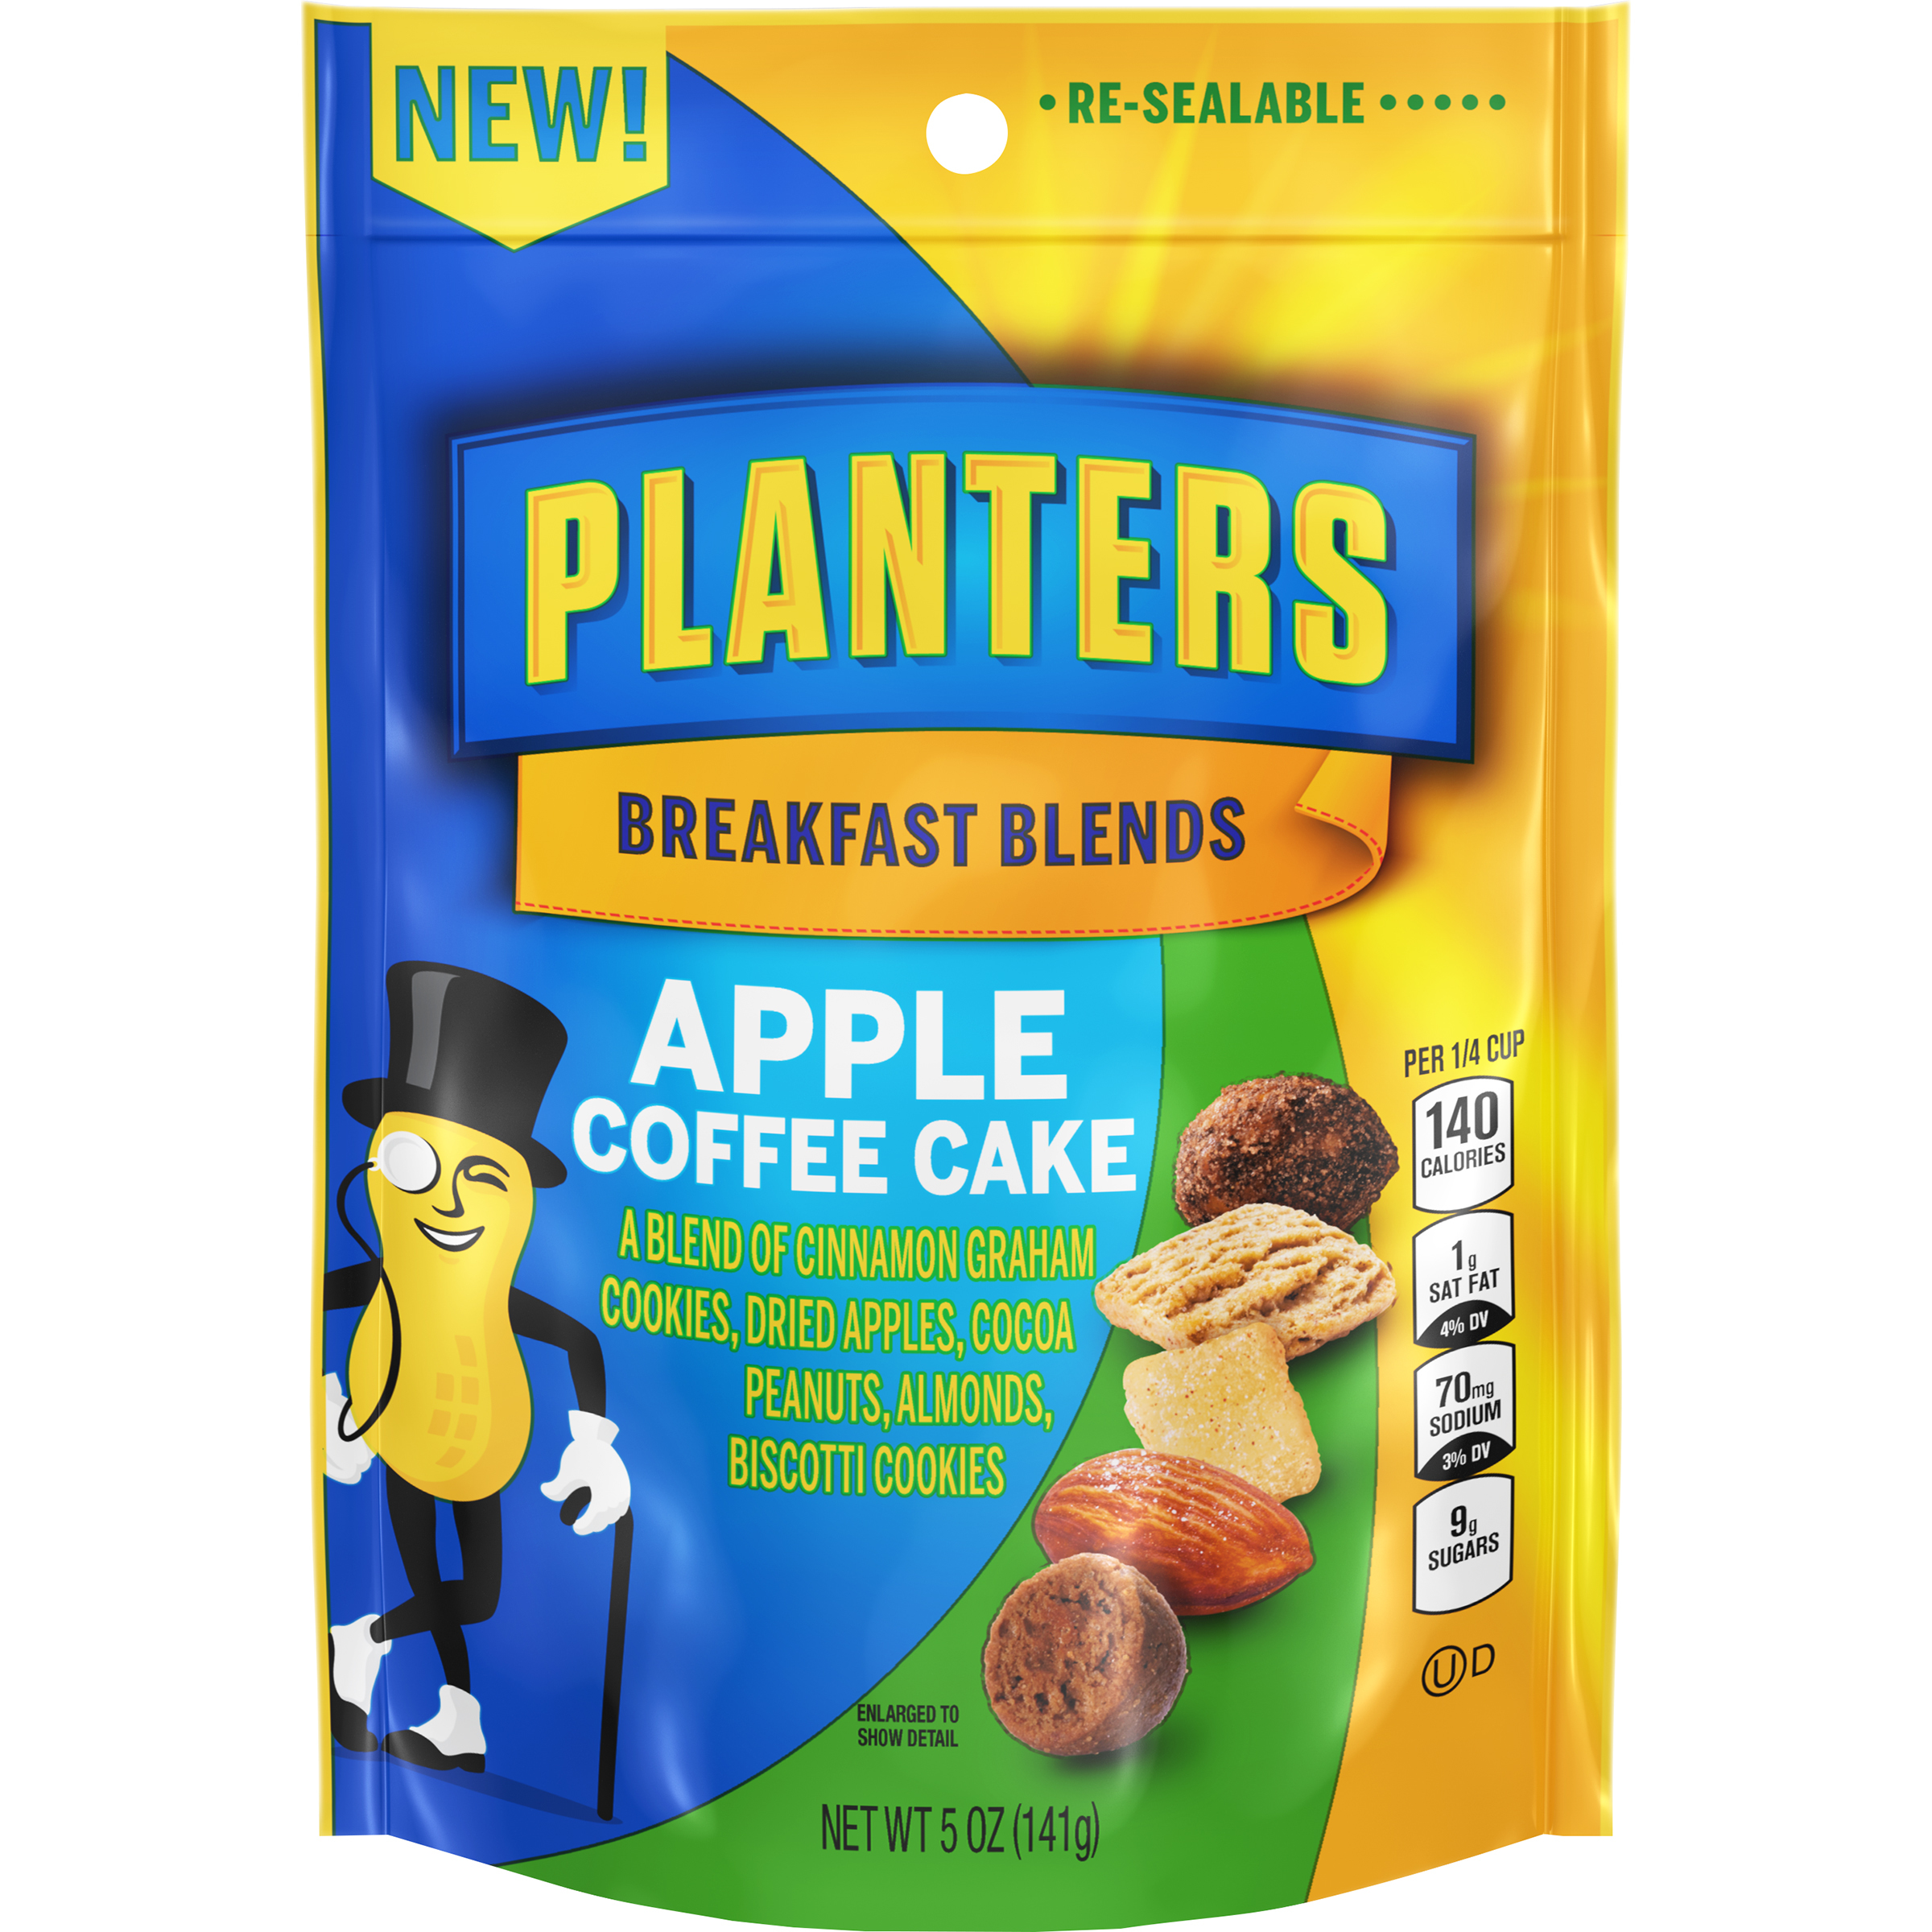 Planters Breakfast Blends Apple Coffee Cake Trail Mix, 5 oz Bag image